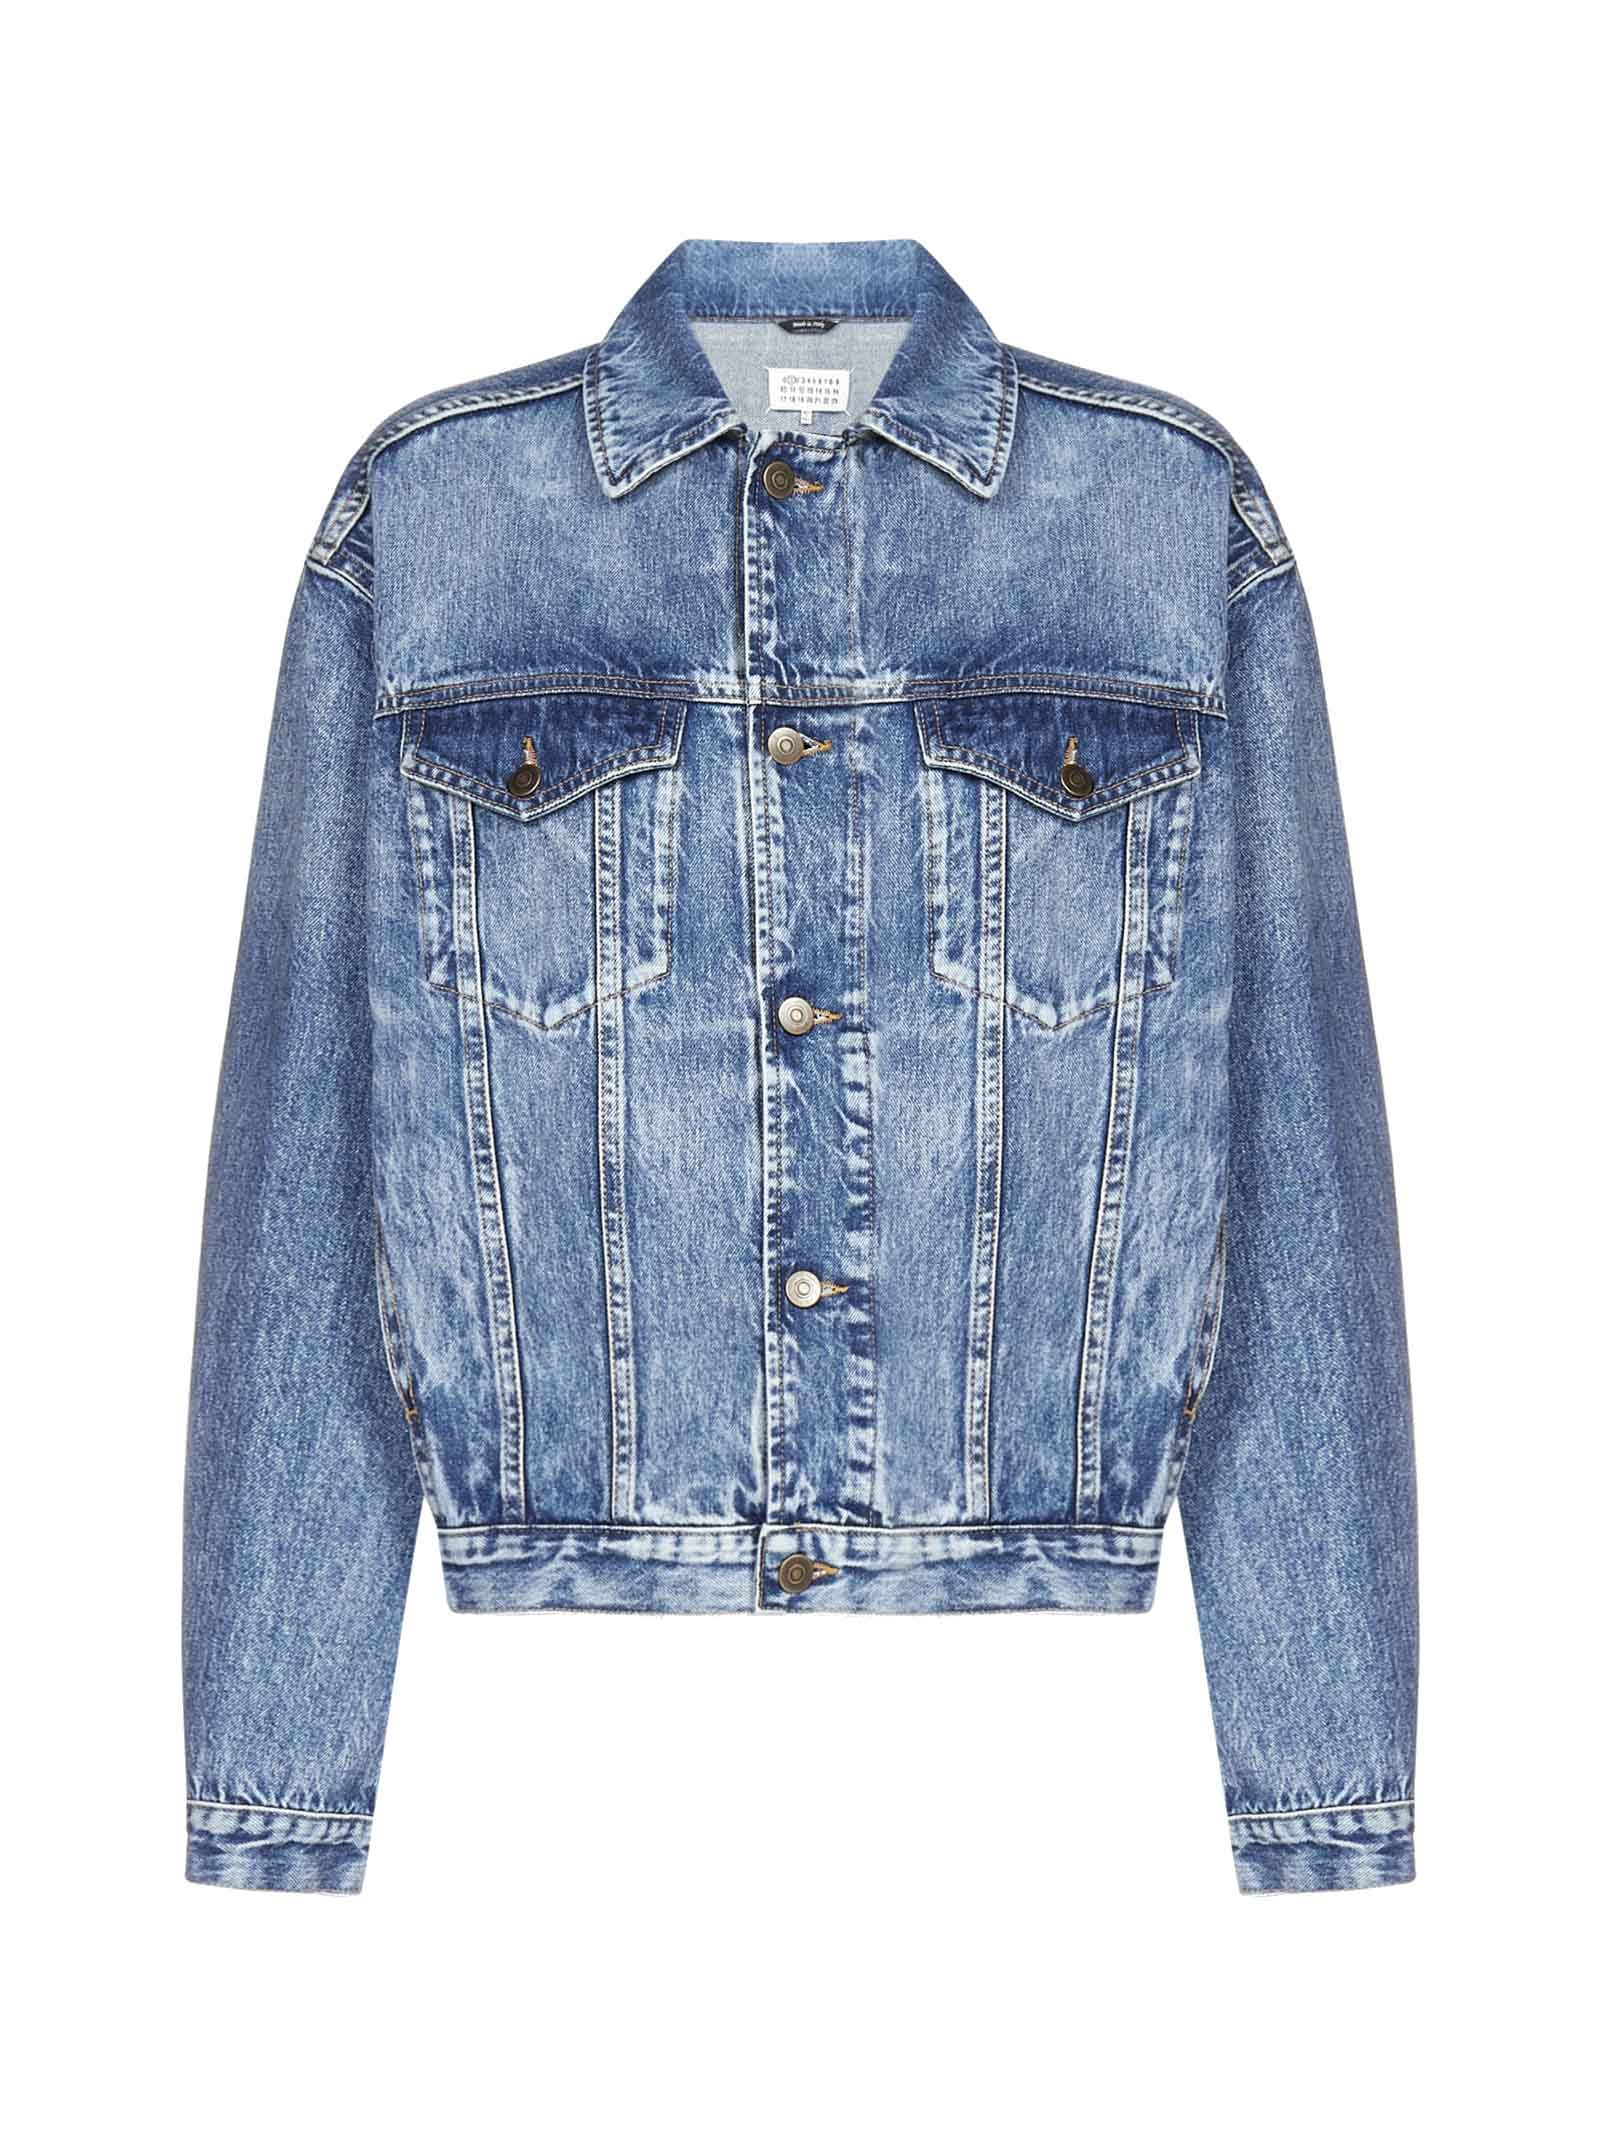 Maison Margiela Recycled Denim Oversized Jacket